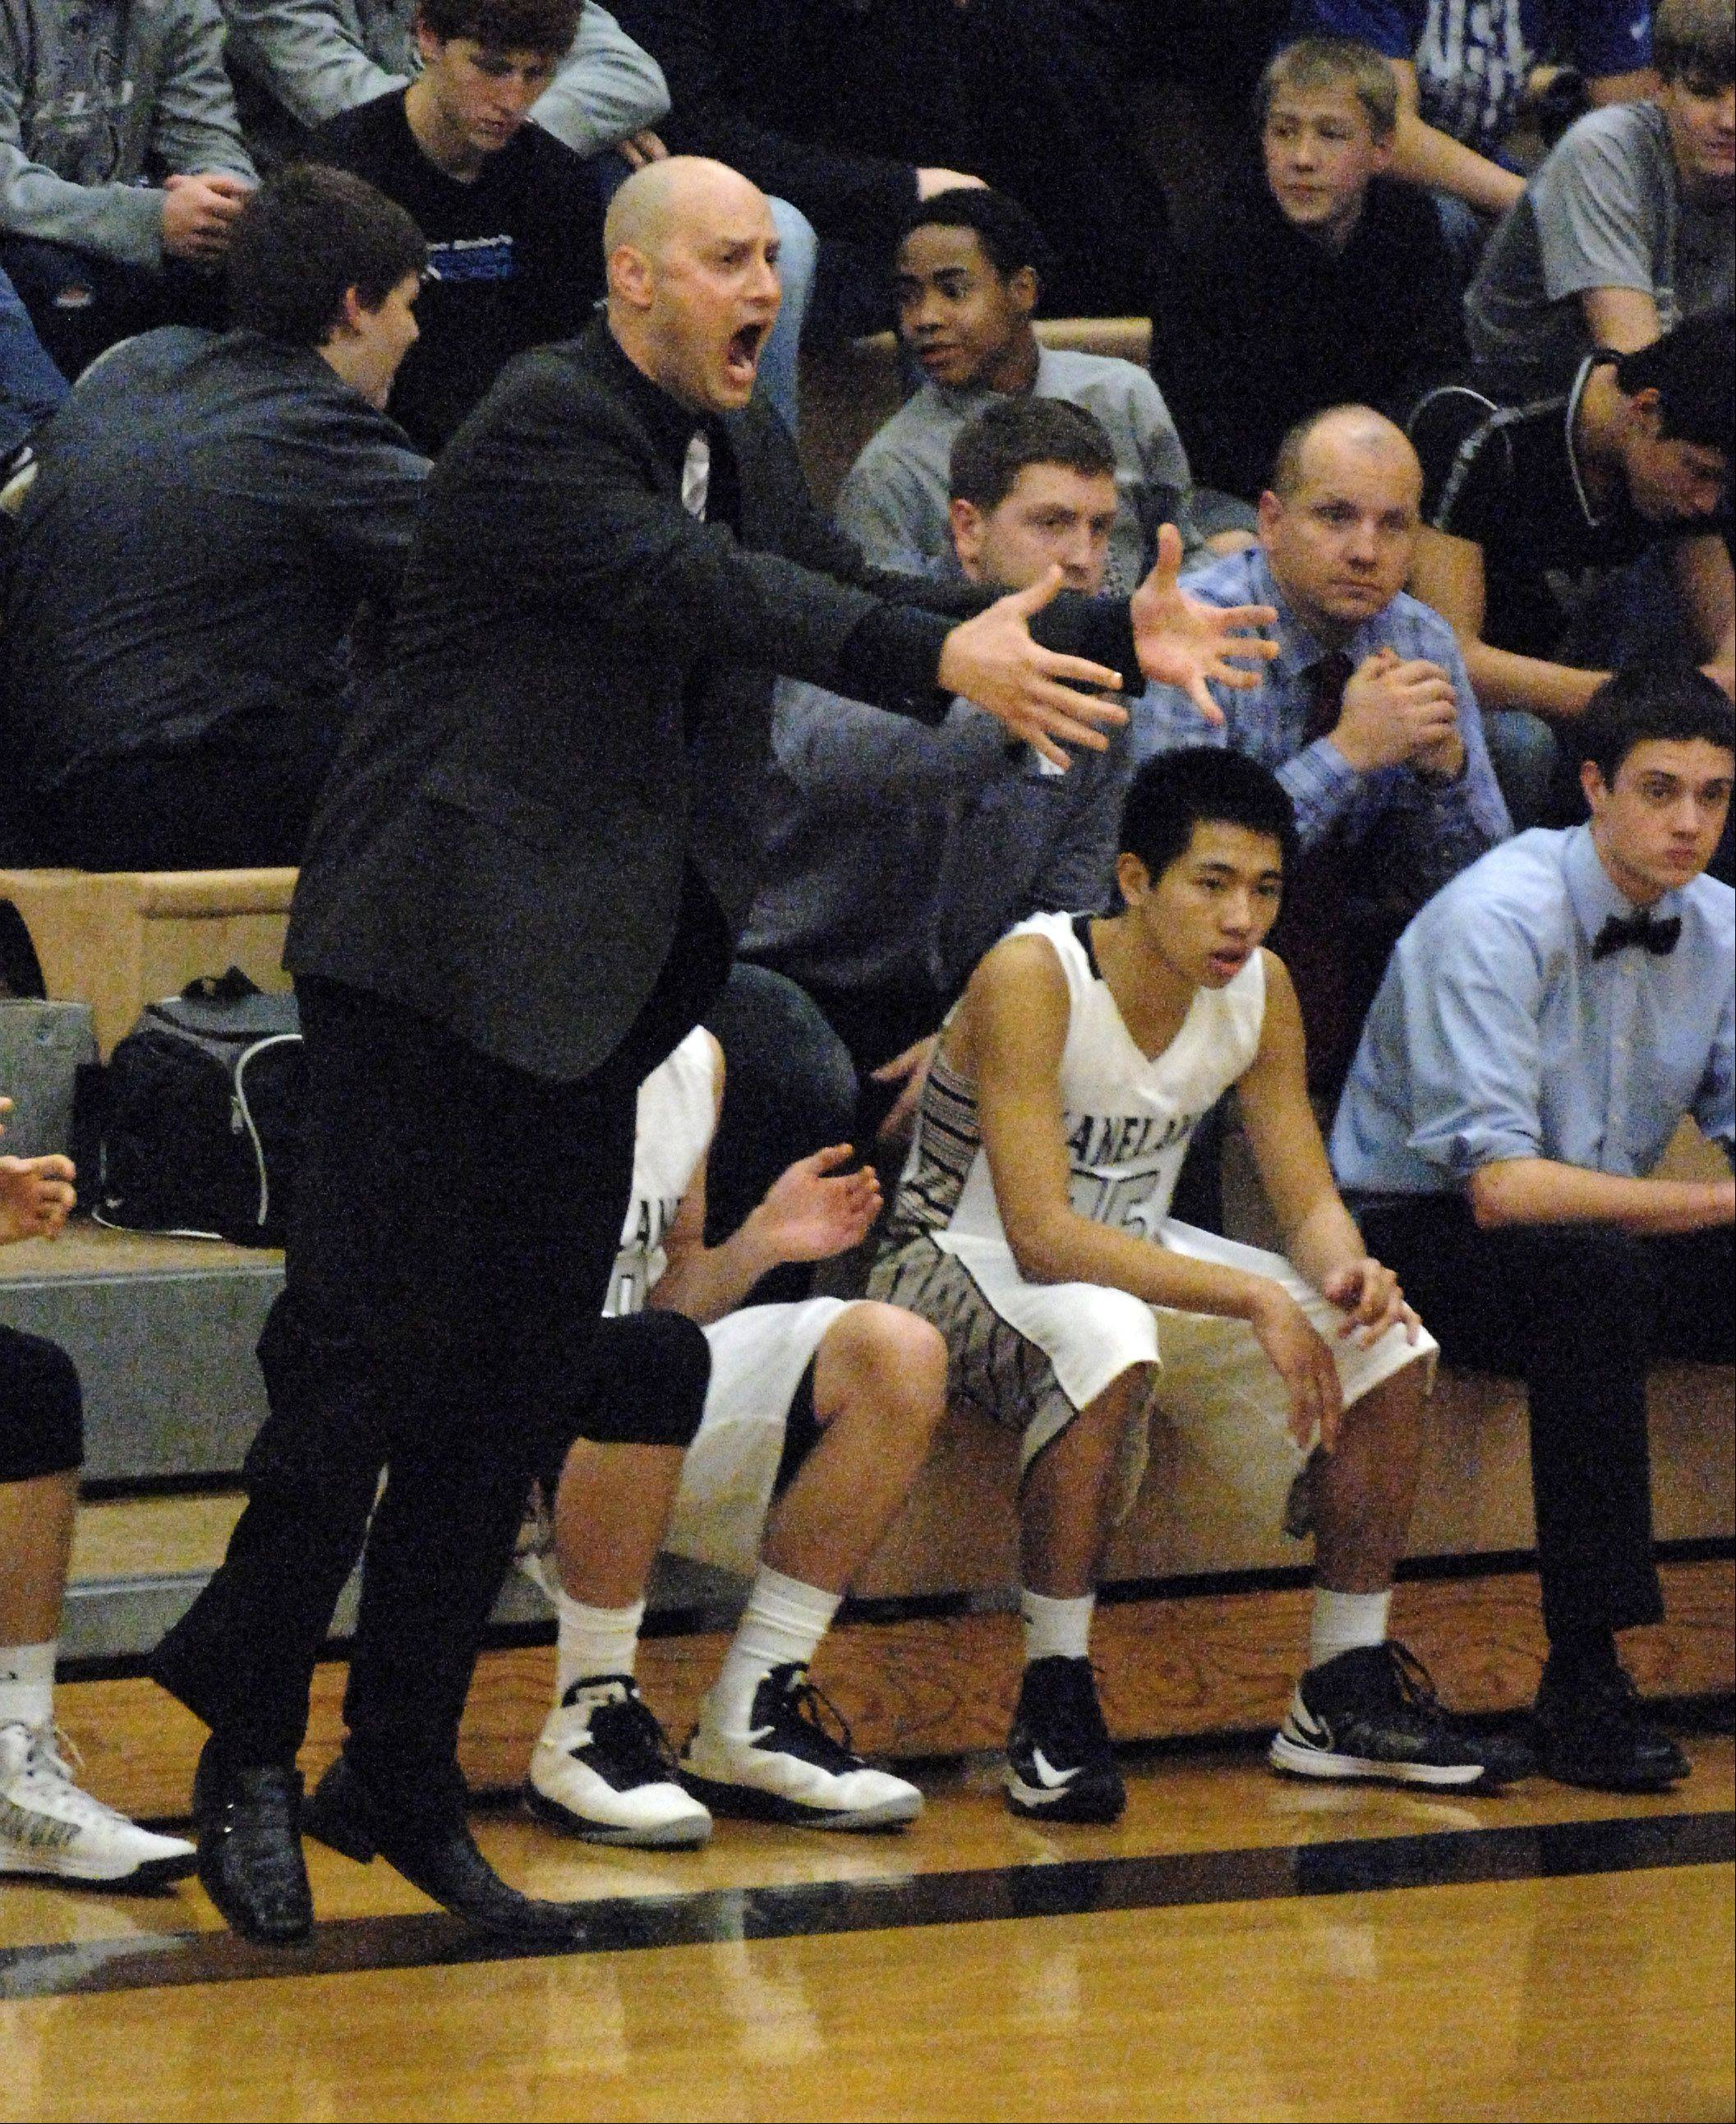 Brian Johnson, a 1997 St. Edward graduate and now the head coach at Kaneland, will bring the Knights to his alma mater to battle the Green Wave on Tuesday.